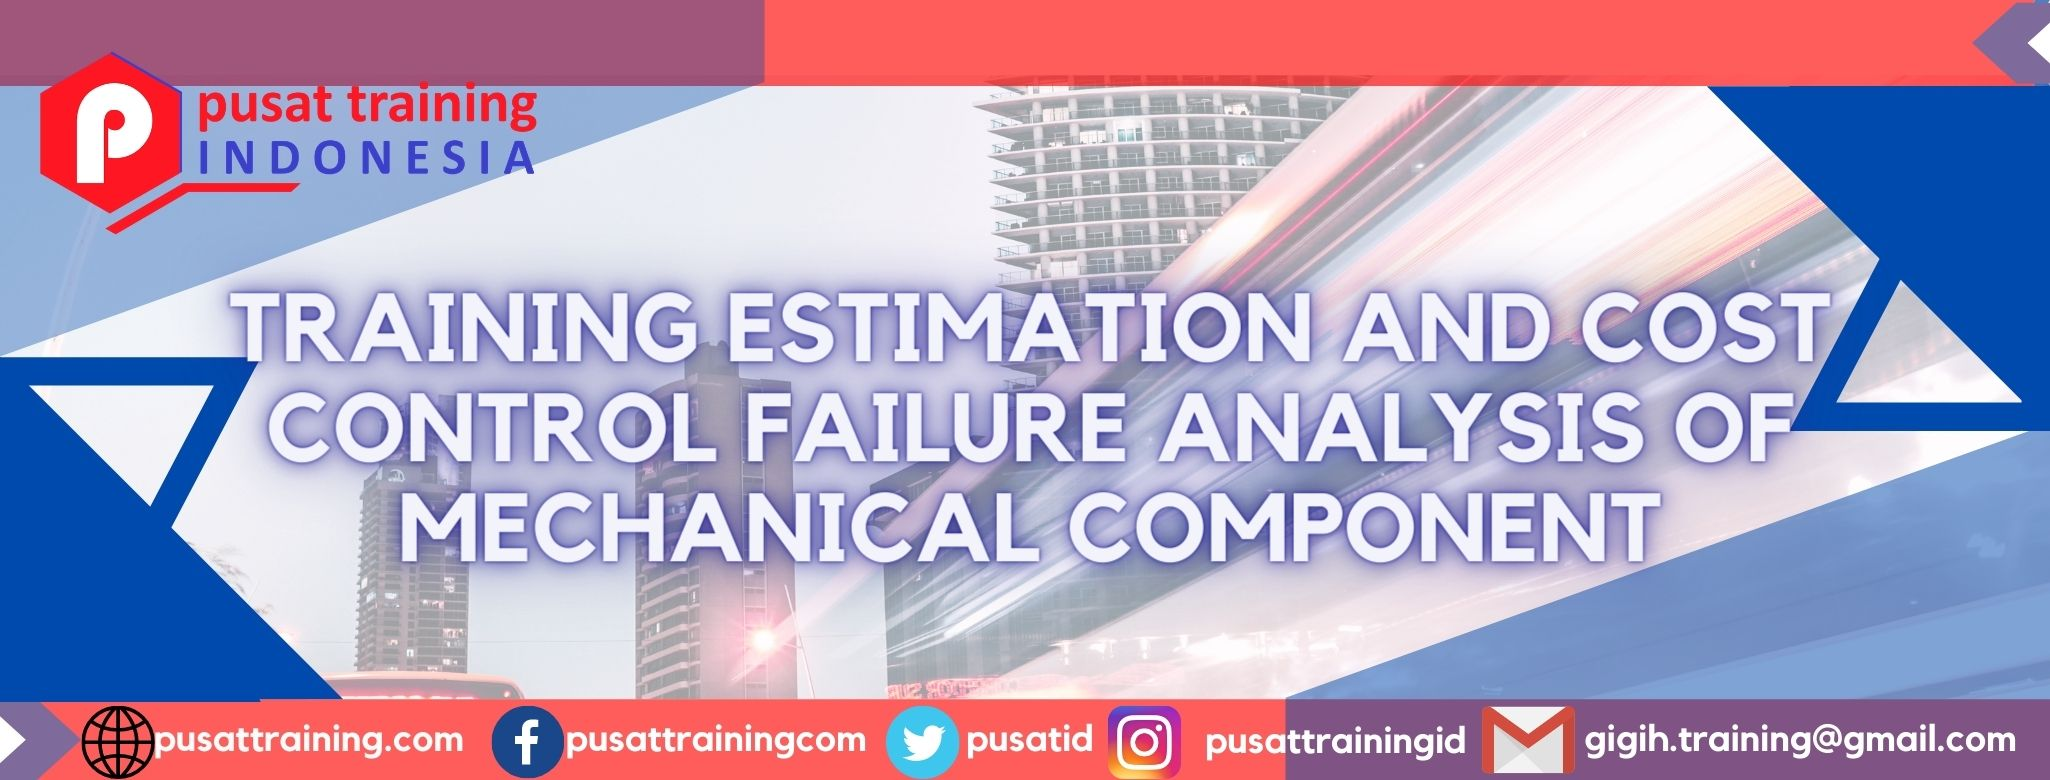 TRAINING ESTIMATION AND COST CONTROL FAILURE ANALYSIS OF MECHANICAL COMPONENT